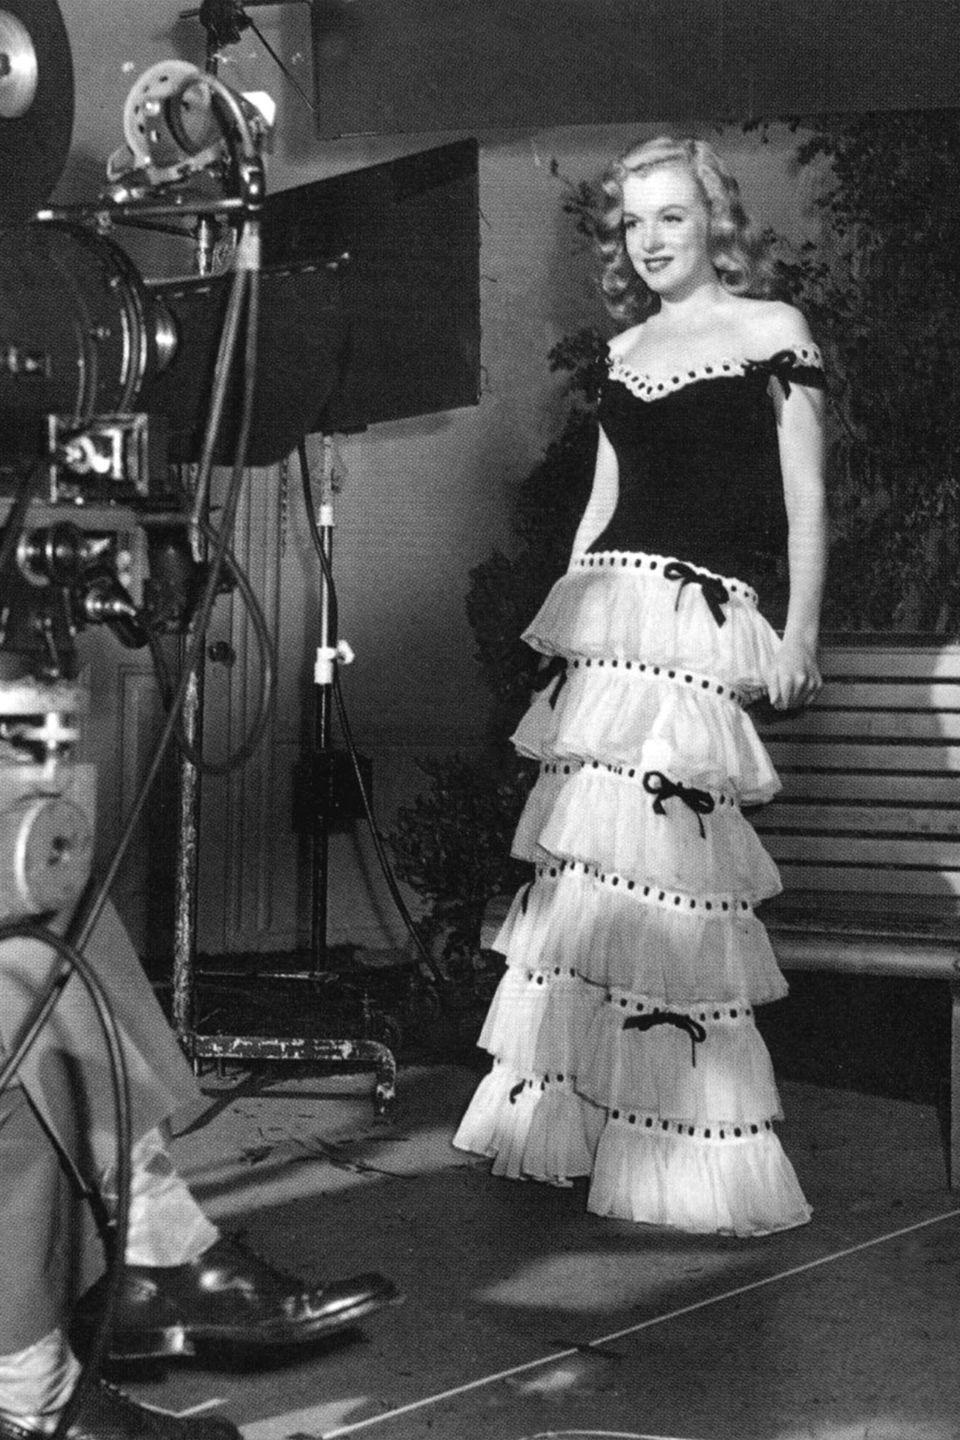 <p>After meeting photographer David Conover in 1944, she signed with Blue Book Model Agency and her modeling segued into acting when she met executive Ben Lyon of 20th Century Fox where she performed a screen test (pictured above). She was granted a divorce from Dougherty to focus on her acting career.</p>